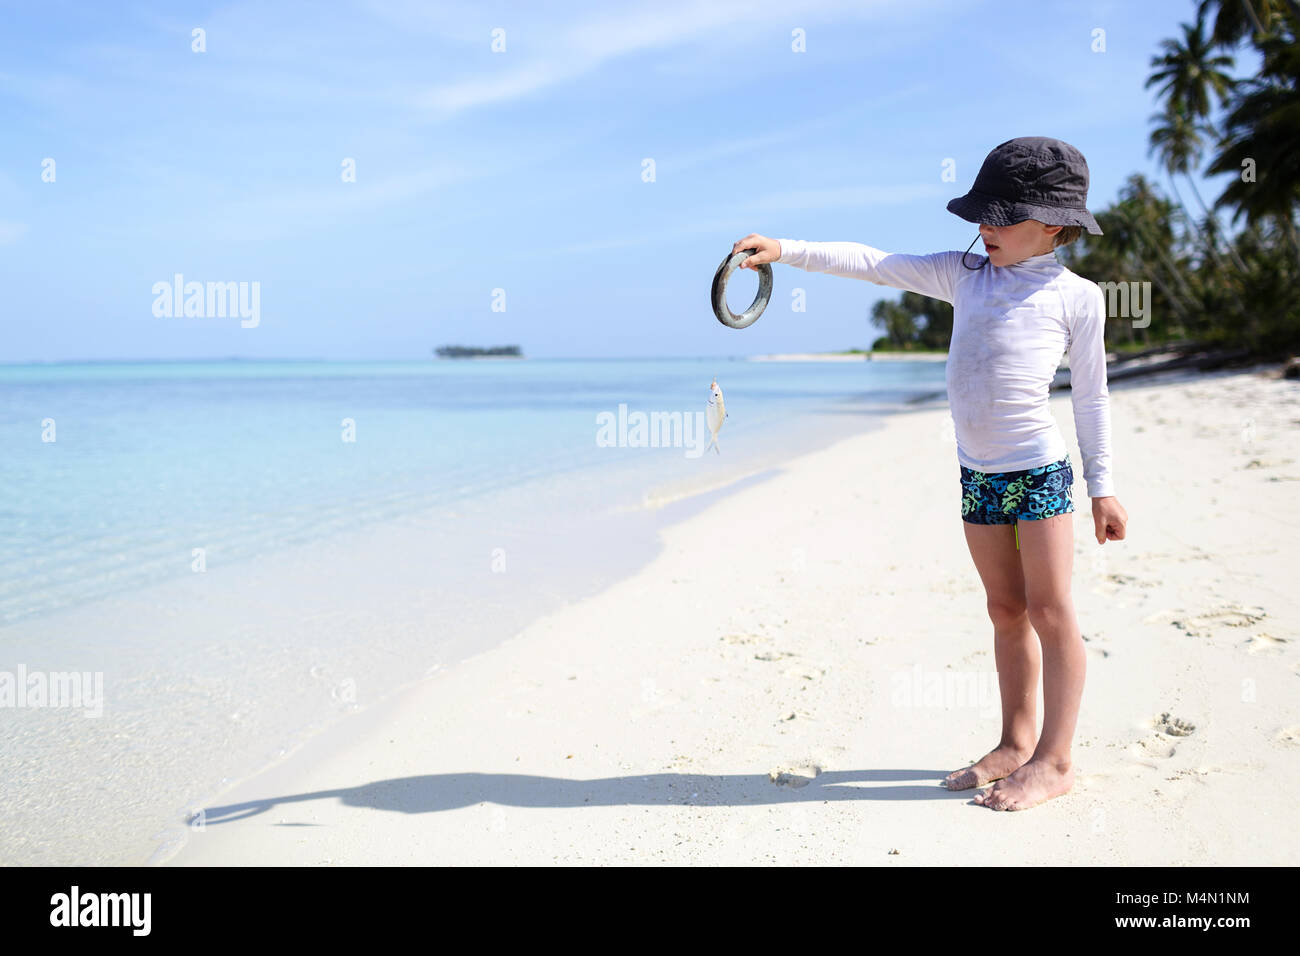 Happy face cute boy showing the fish he caught, portrait of preteen child with a hat, summer travel and beach vacation - Stock Image